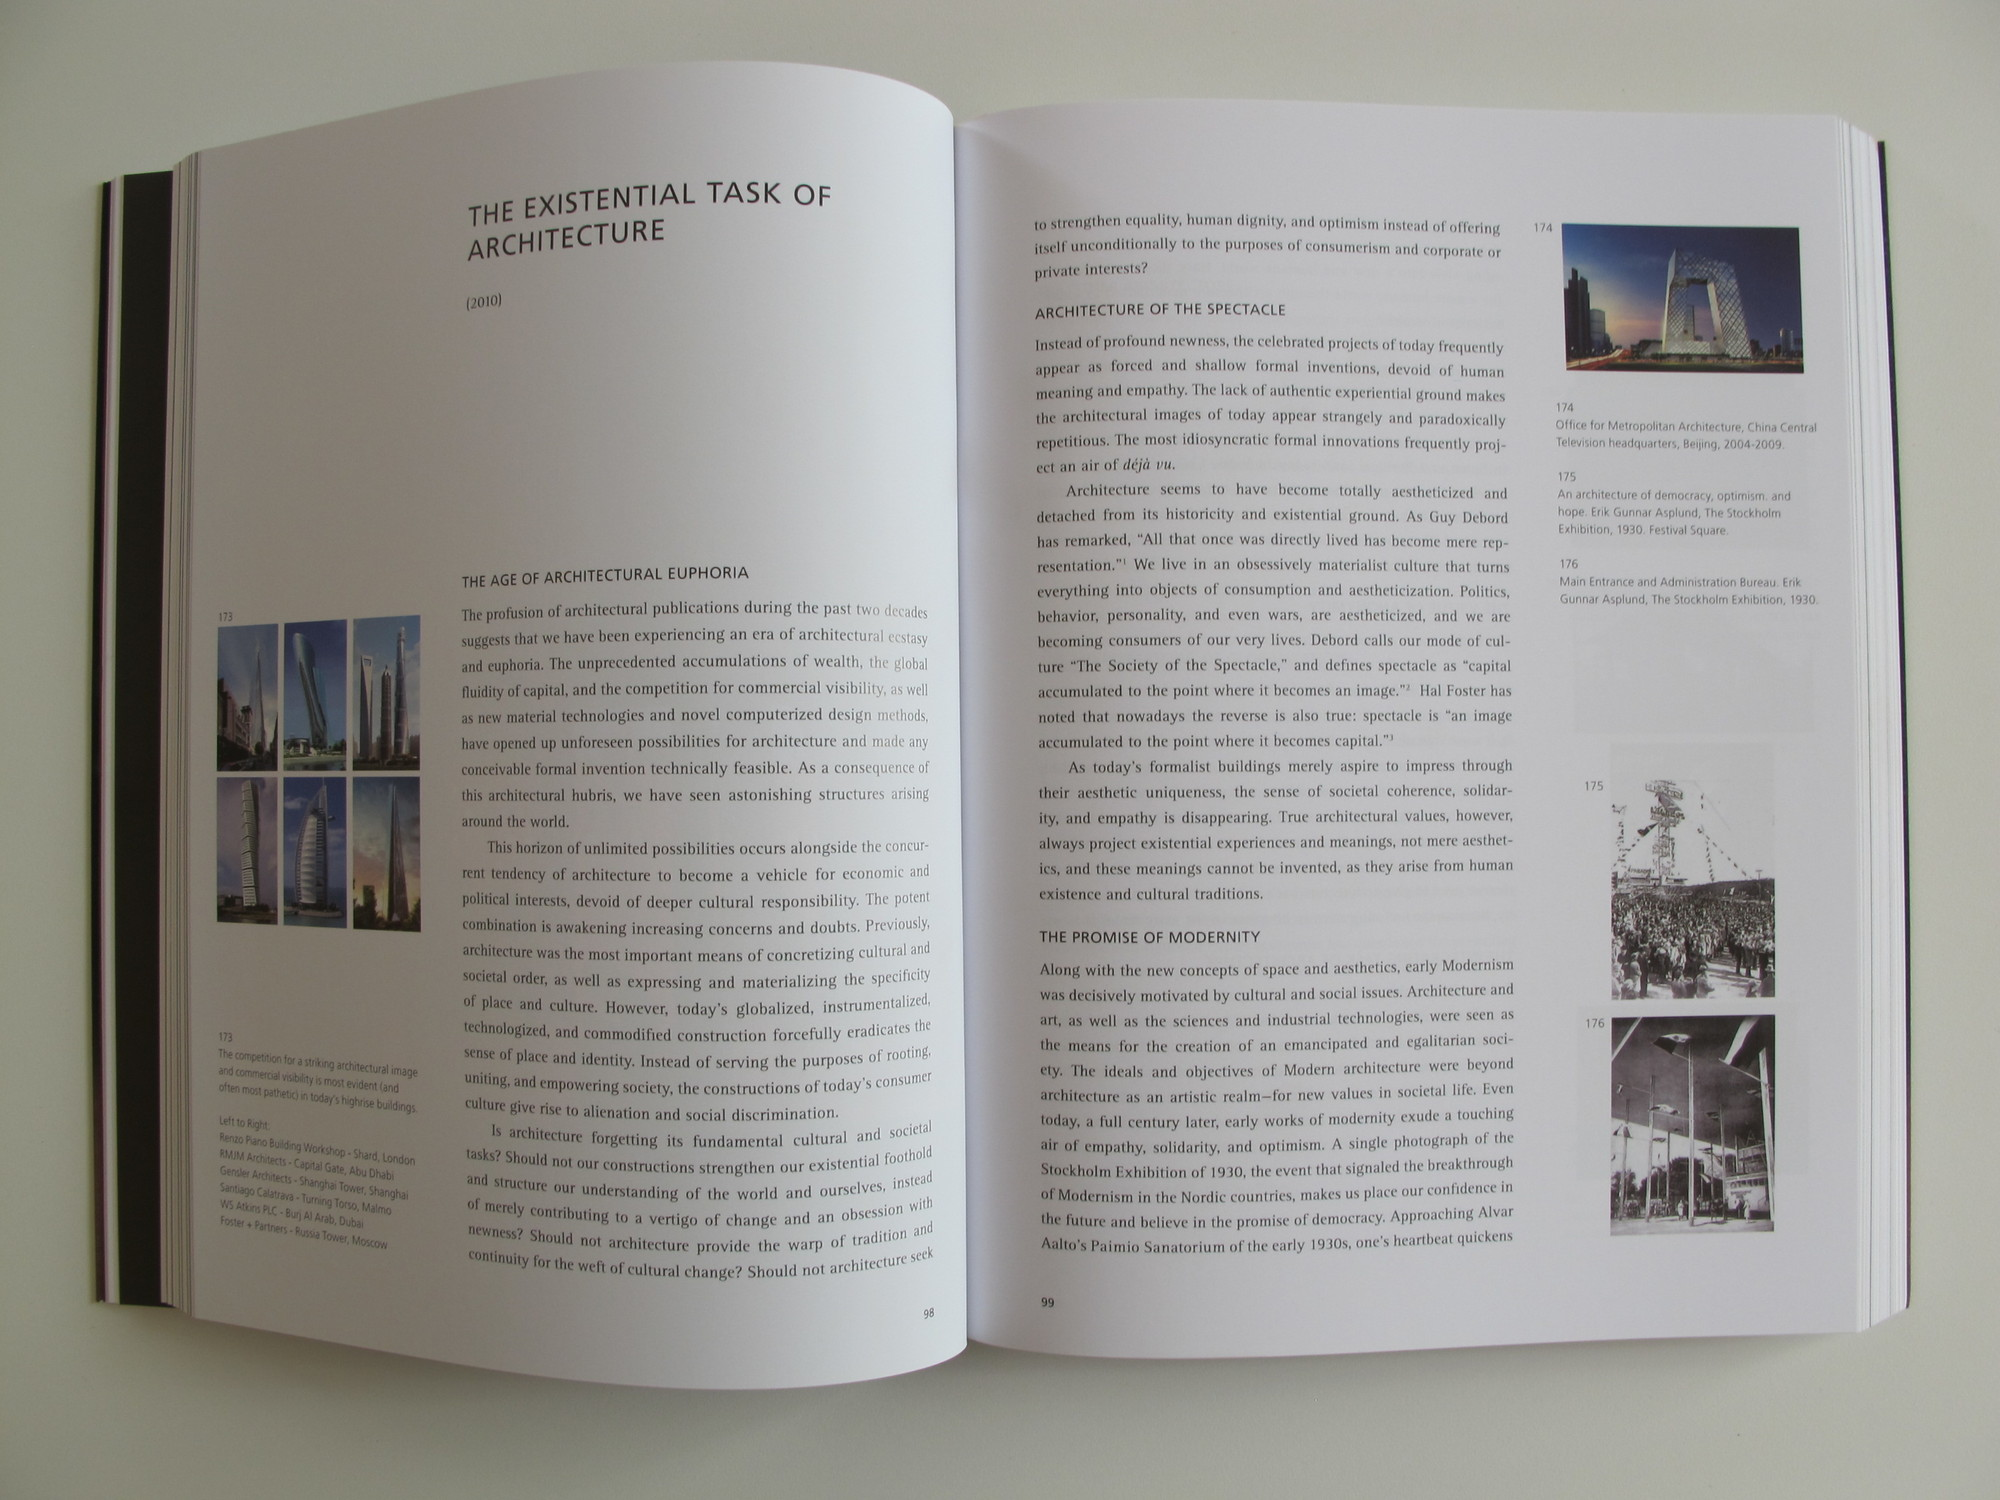 juhani pallasmaa encounters. architectural essays Rivers barden architects is a houston-based architectural practice with a focus on juhani pallasmaa encounters: architectural essays, 2006 december.